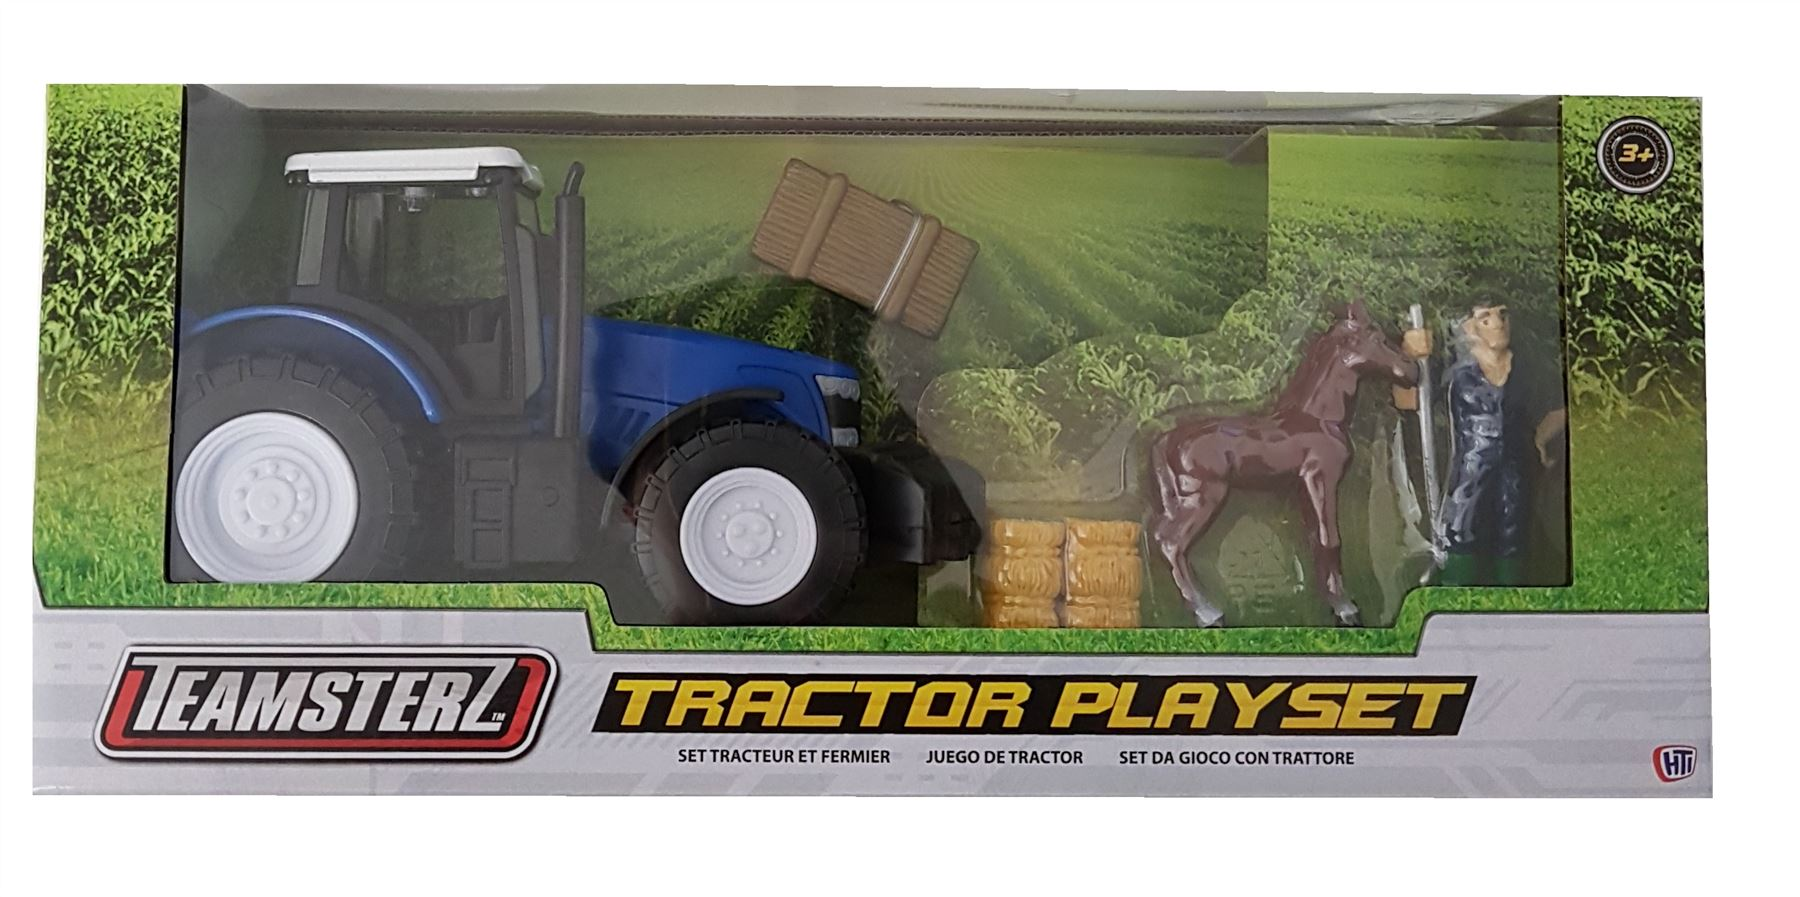 Teamsterz Blue Tractor Playset #0502